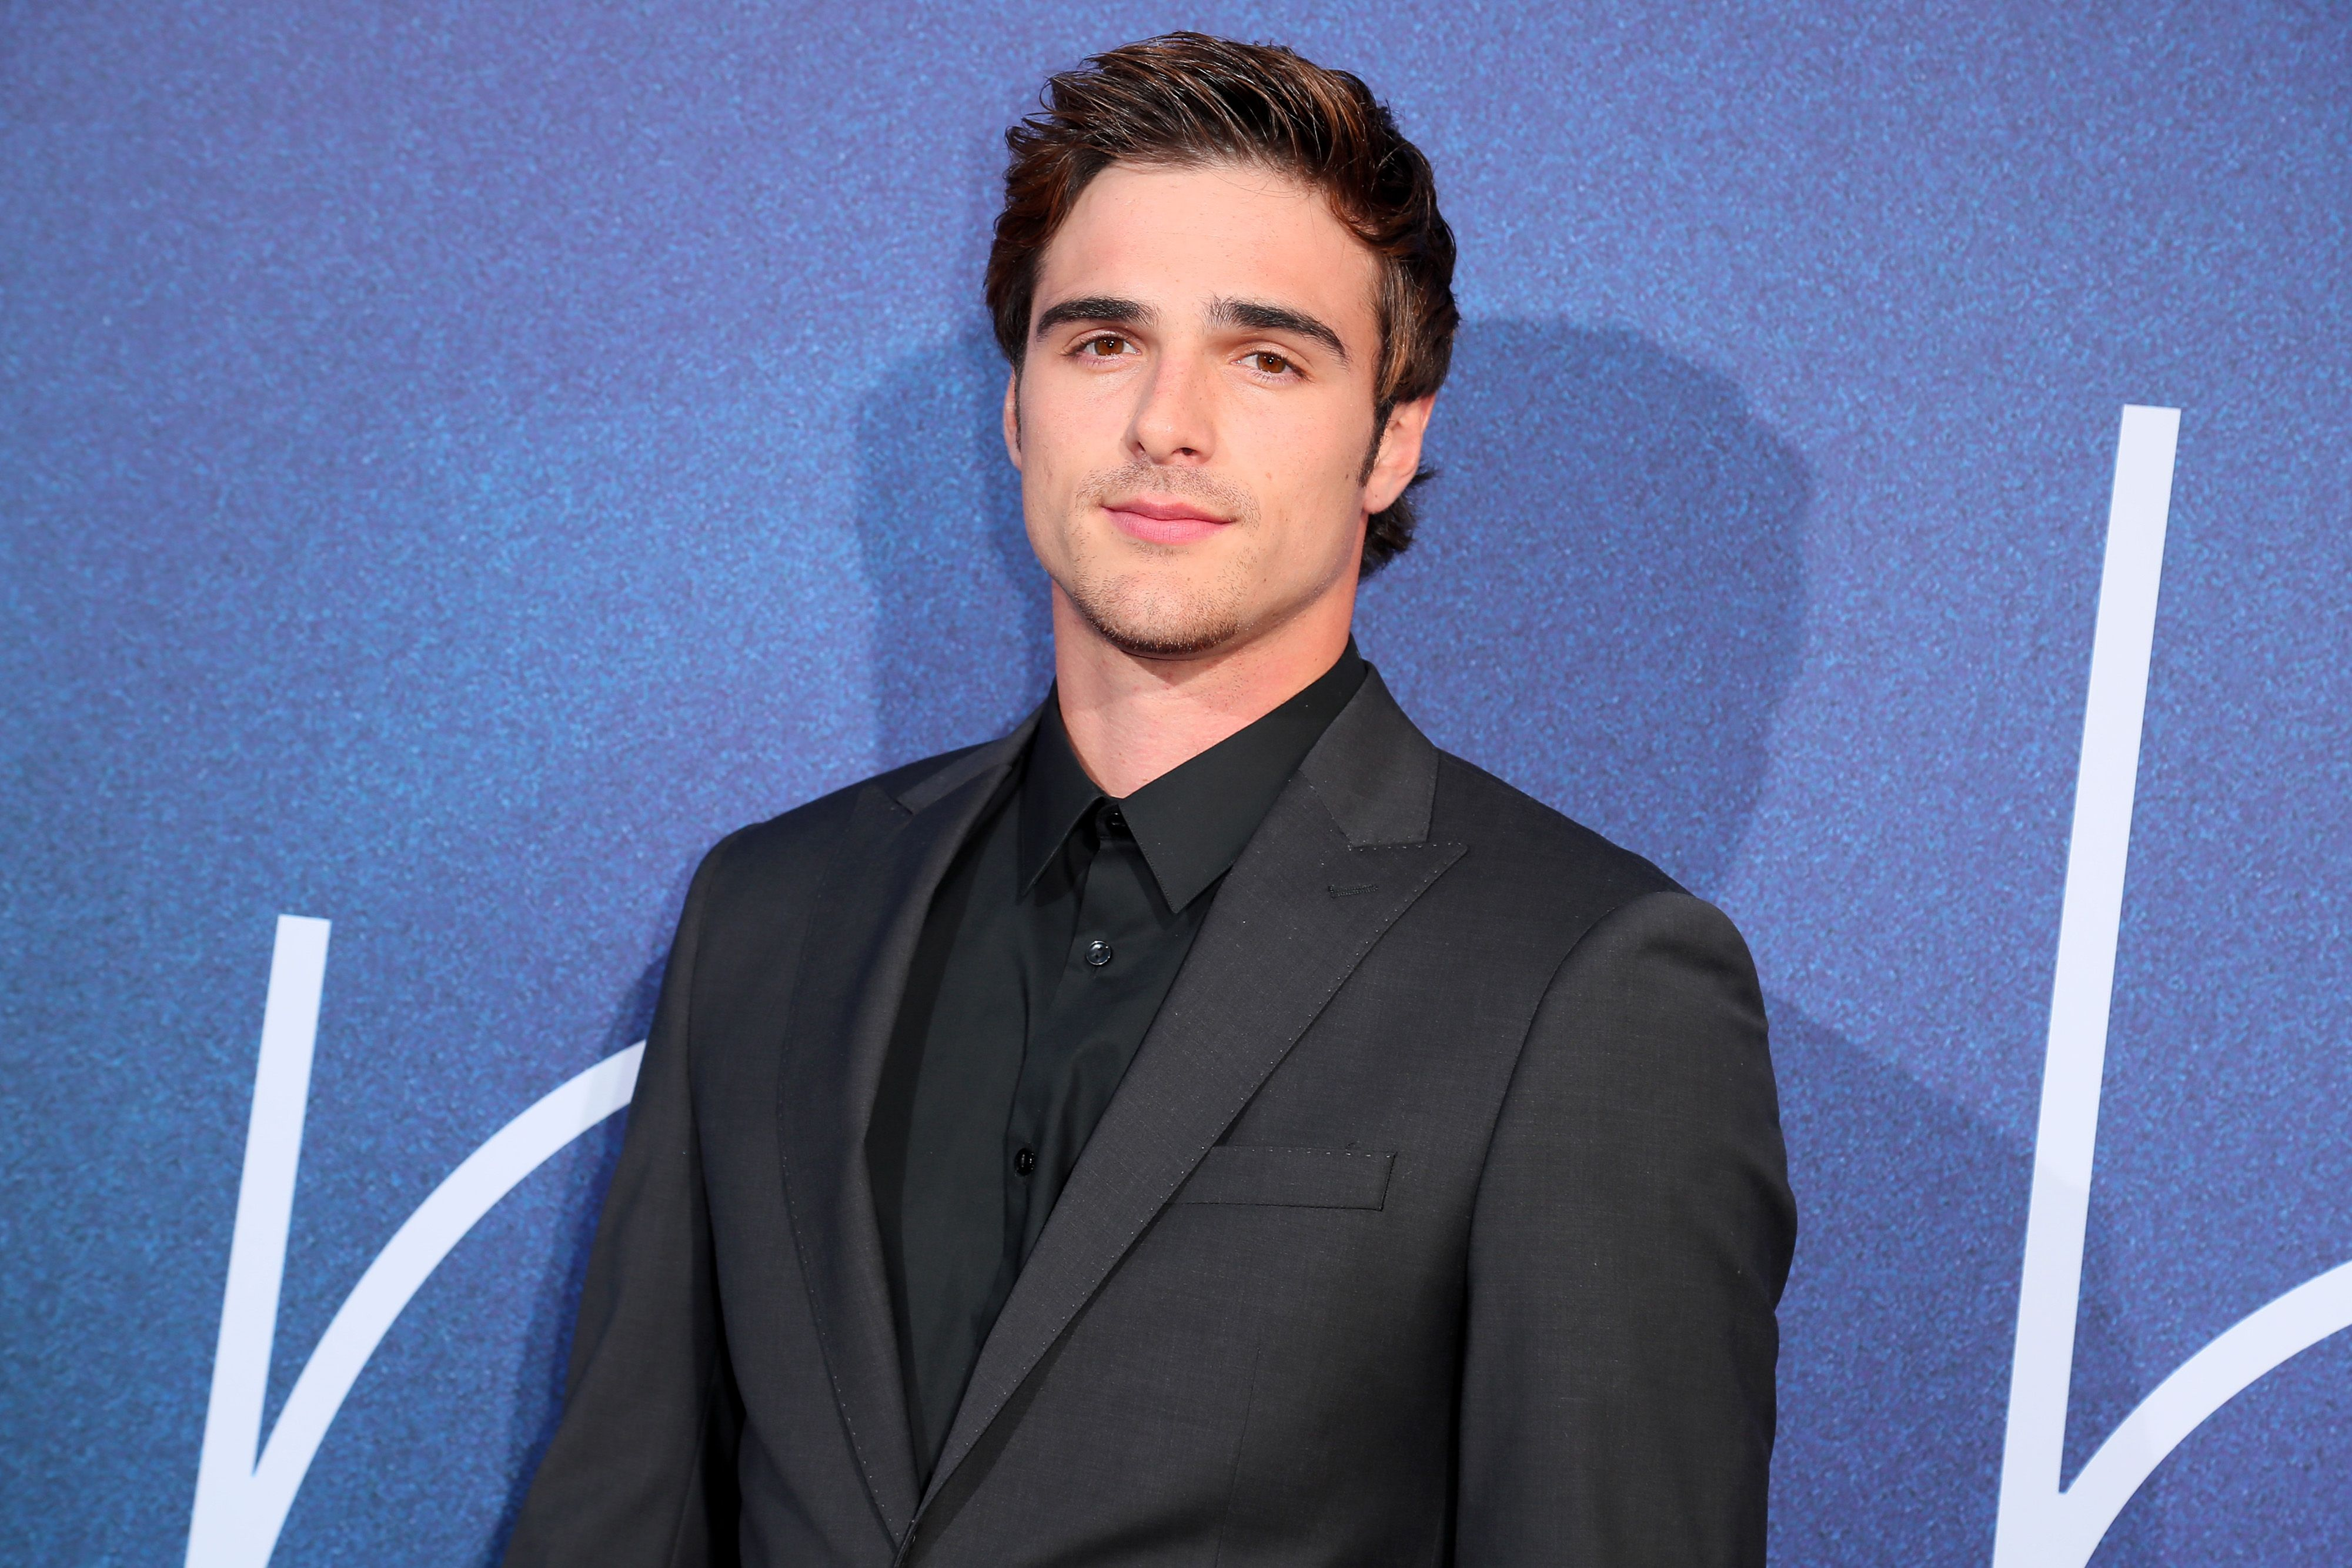 Jacob Elordi wearing a black suit while at an event.